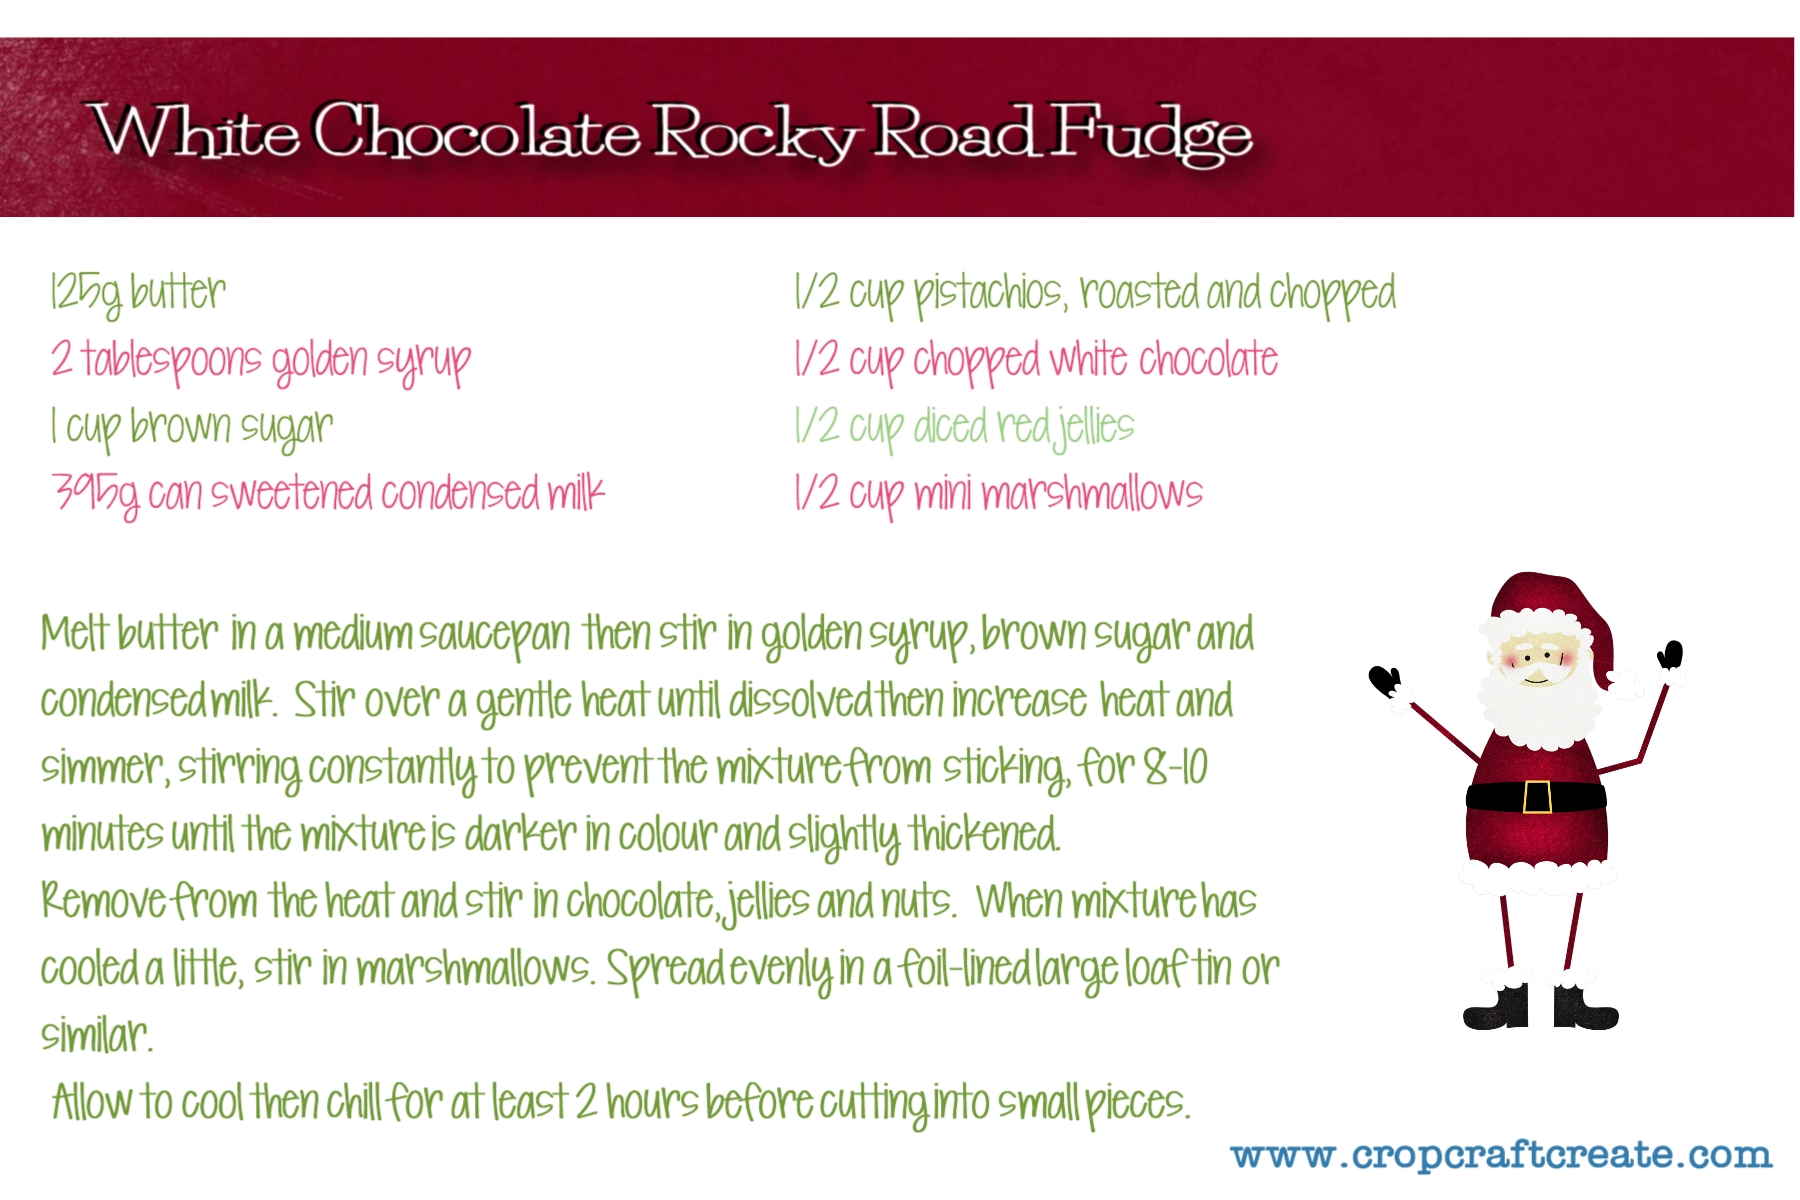 White Chocolate Rocky Road Fudge recipe card